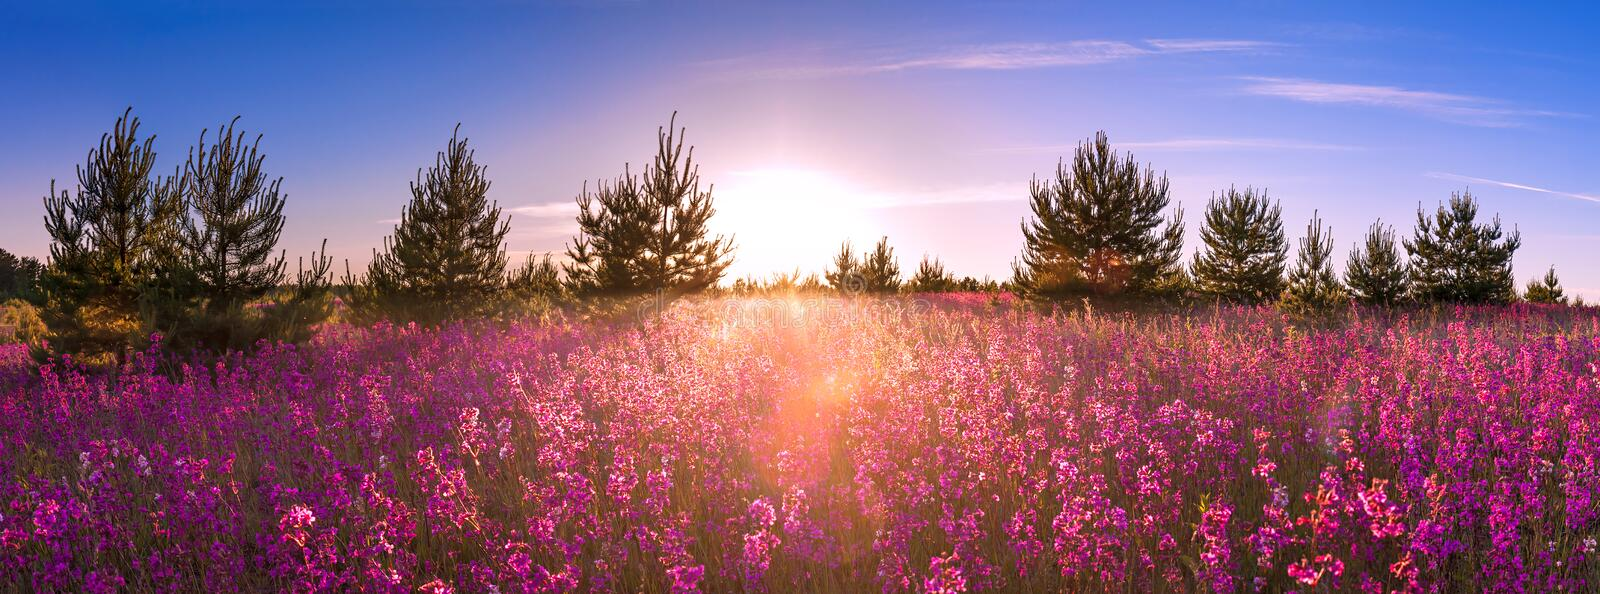 Summer landscape with the blossoming meadow, sunrise stock photos